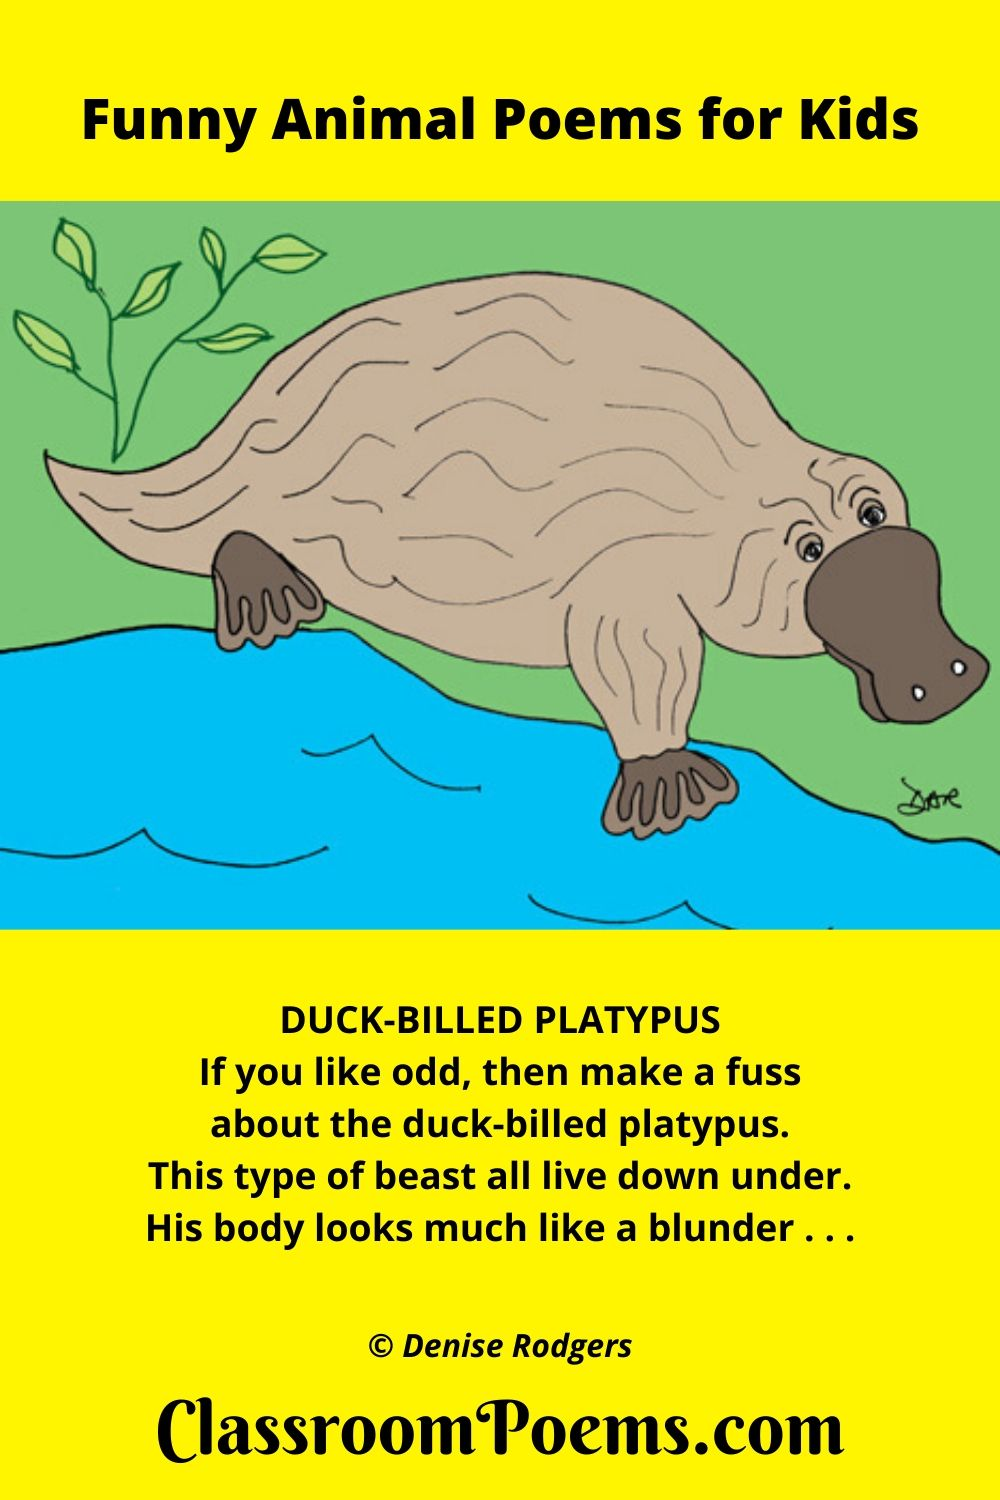 Duck-billed Platypus, a funny animal poem for kids by Denise Rodgers on ClassroomPoems.com.